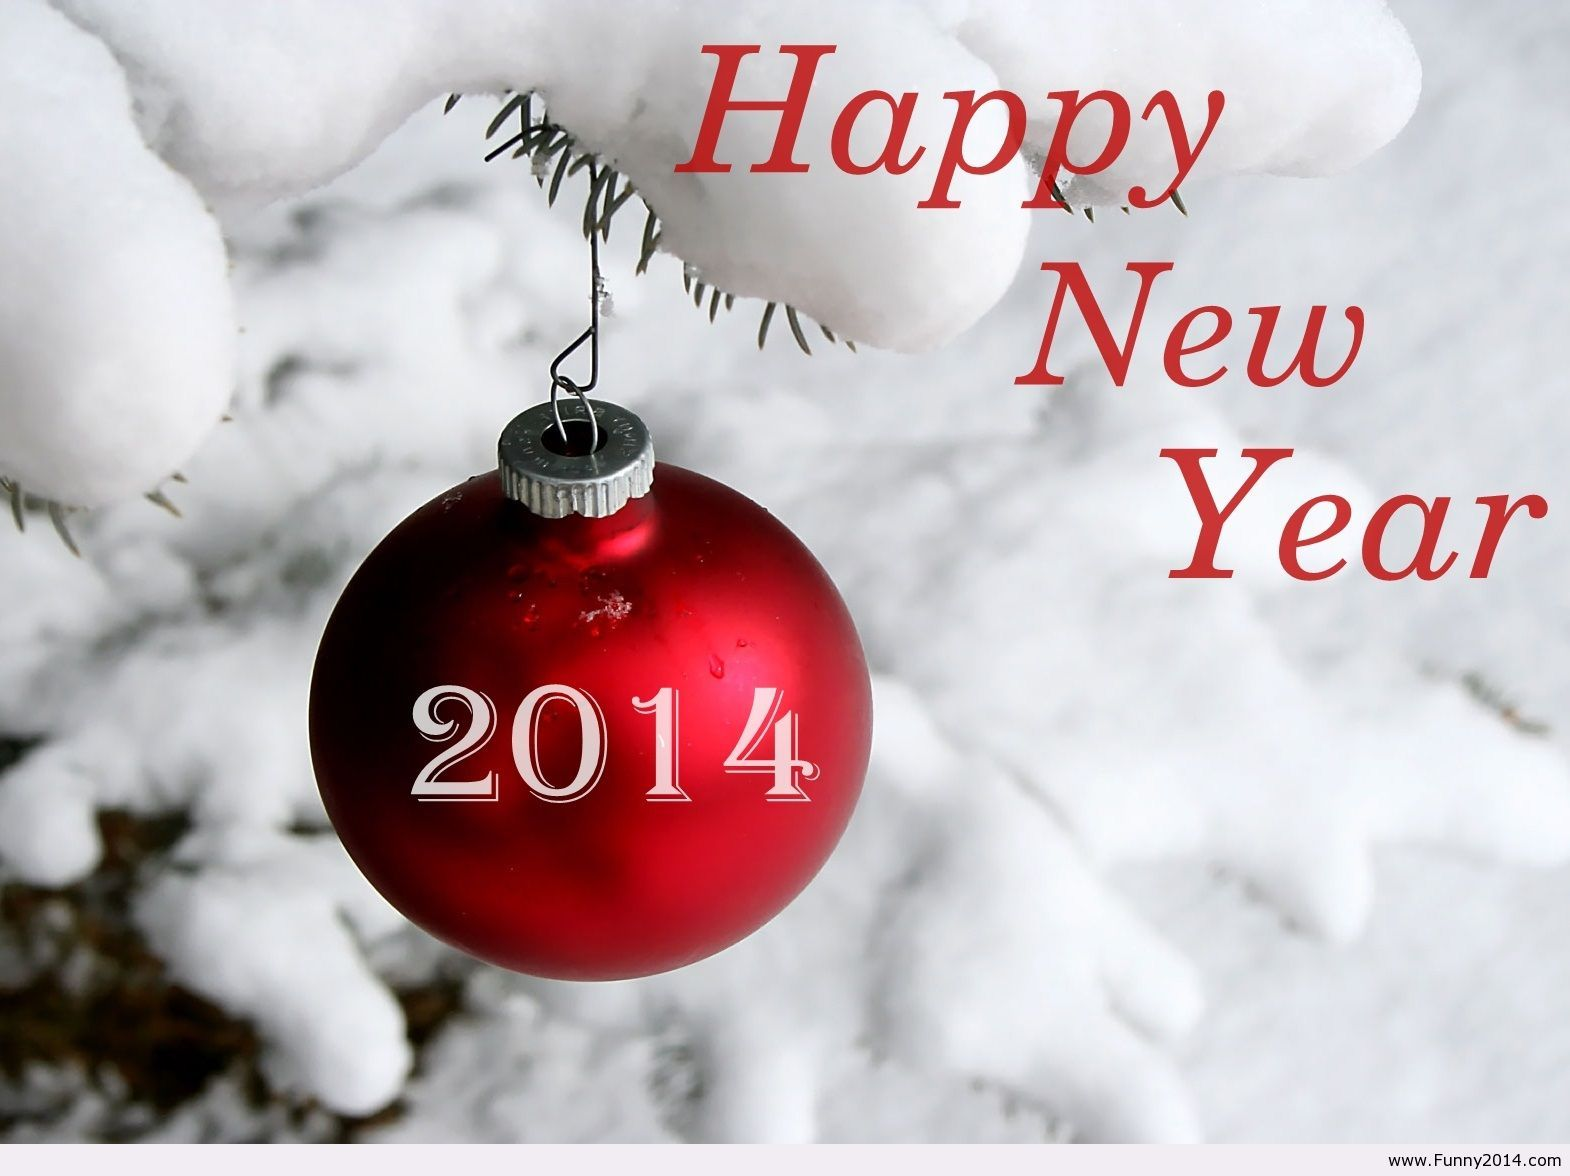 Happy New Year! | PMO Care | Pinterest | Snow